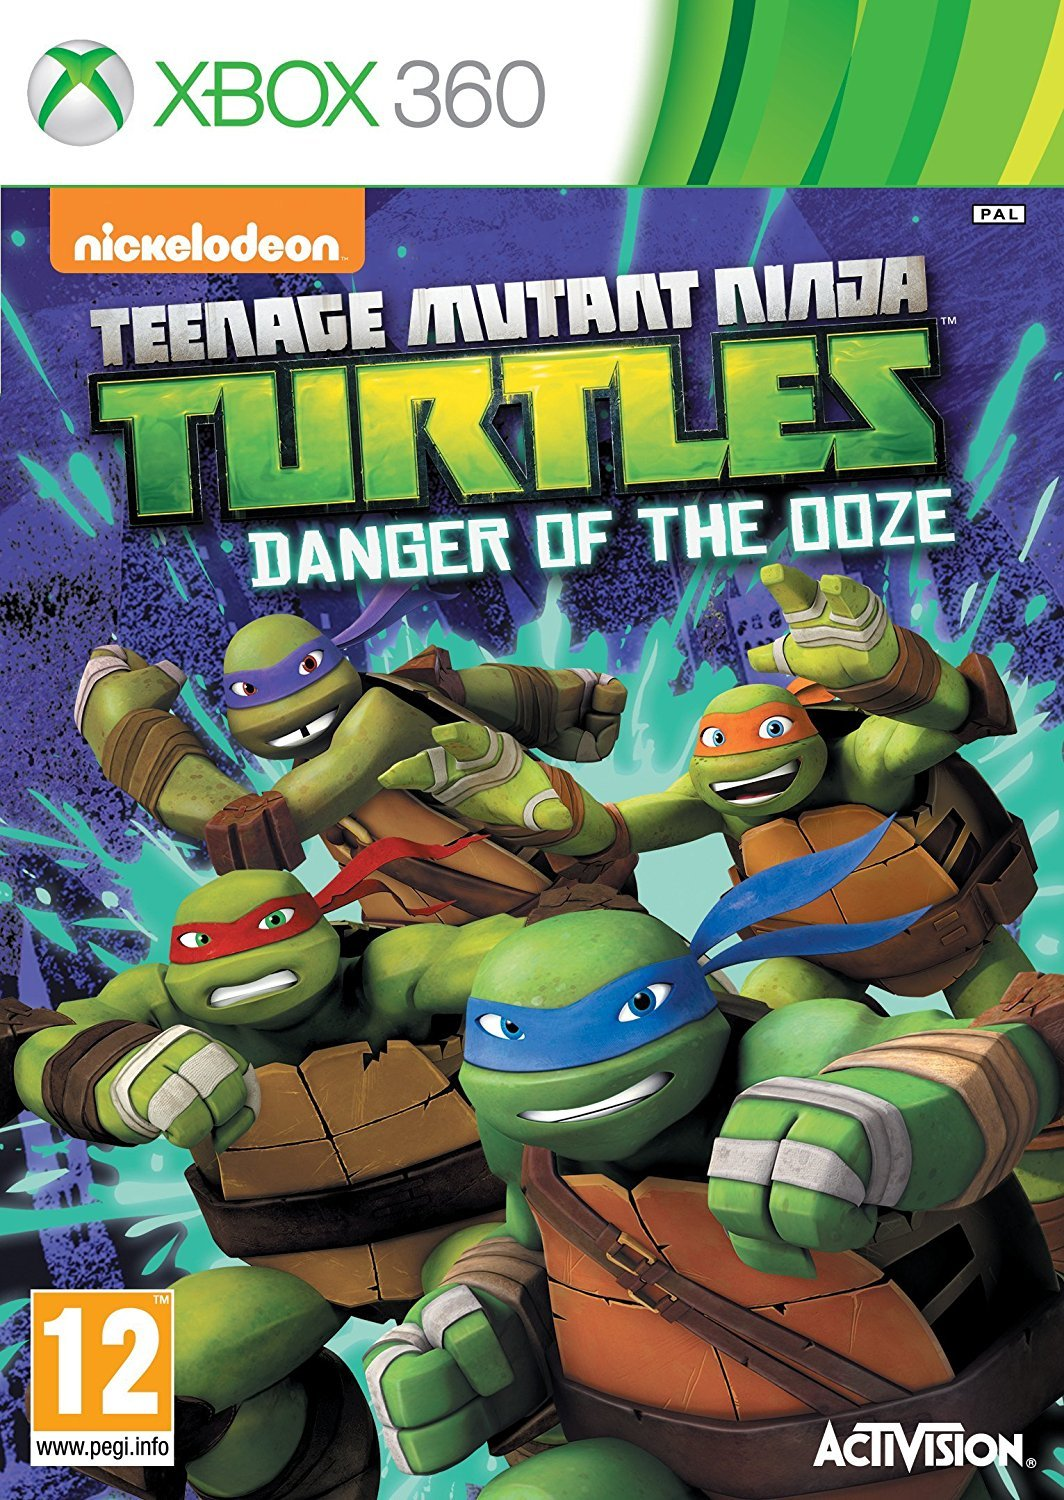 Teenage Mutant Ninja Turtles: Danger of the Ooze for Xbox 360 image